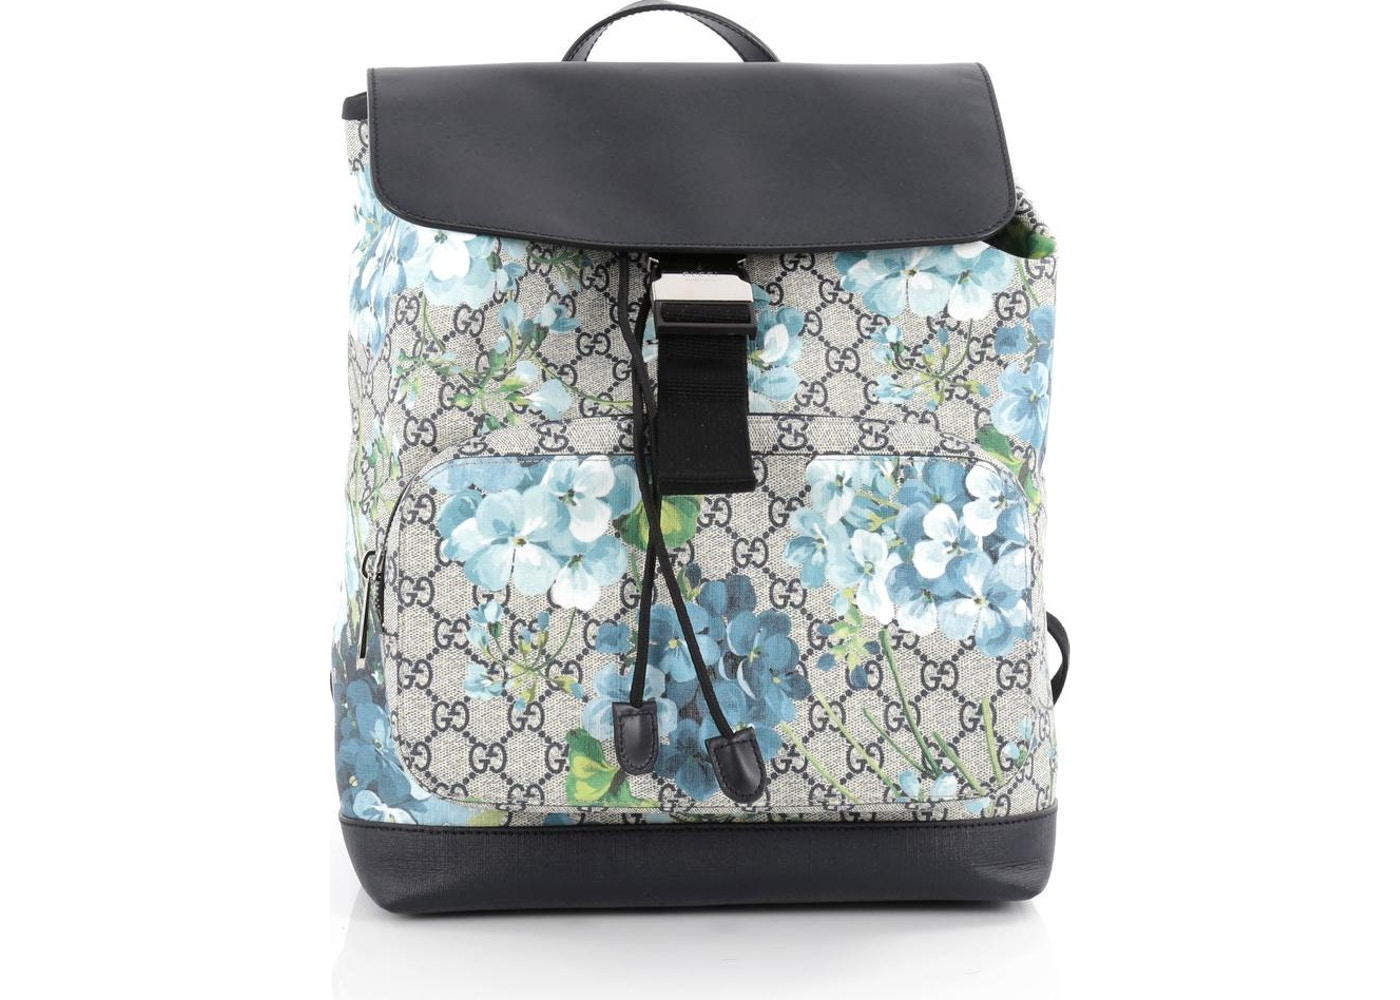 4b90abcda4b1cb Gucci Buckle Backpack GG Monogram Blooms Print Medium Blue/Black